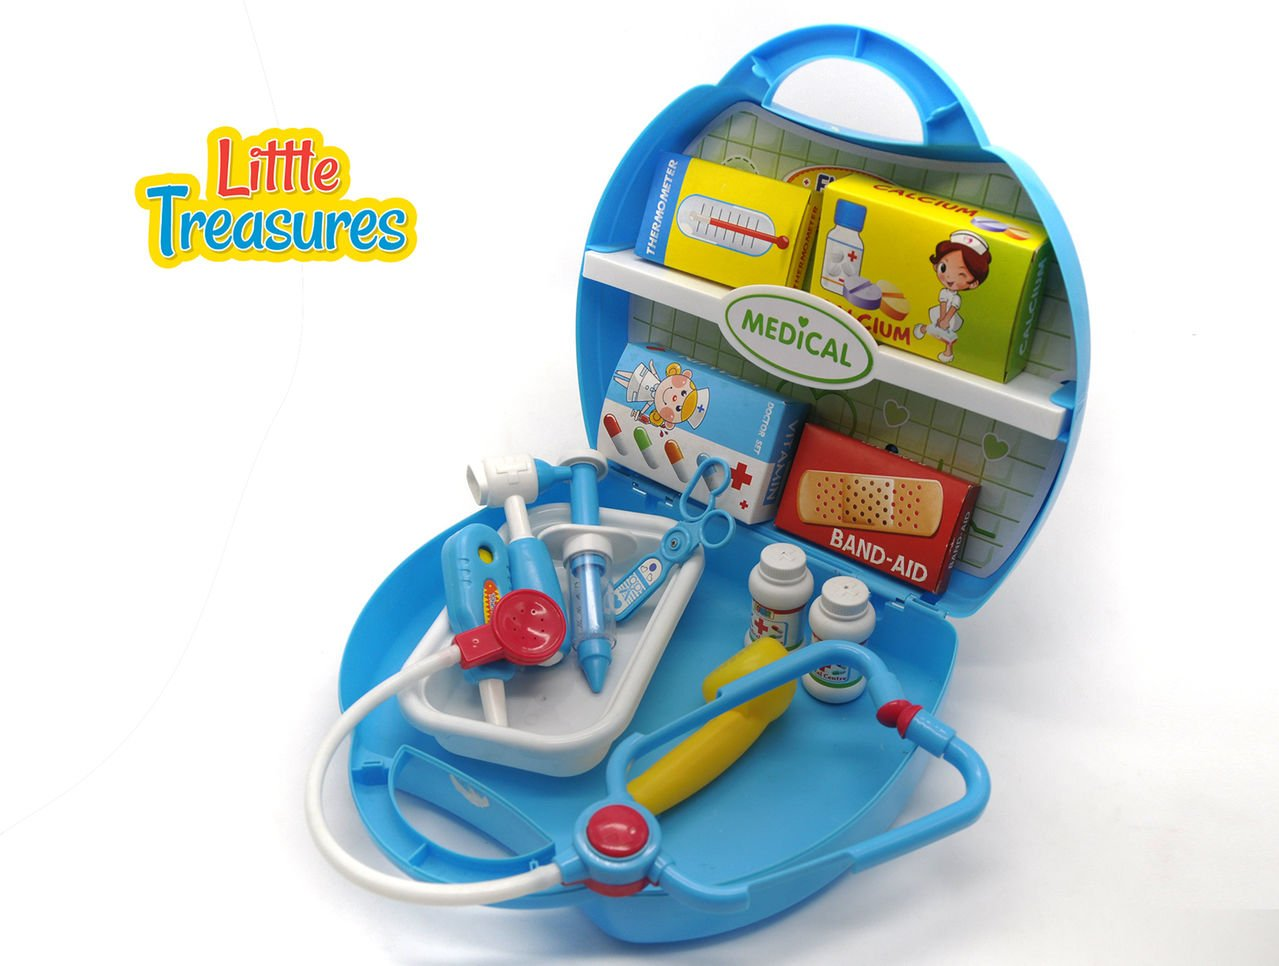 Little Treasures Dr Pretend Medical Toy Kit – Complete with Doctor Medical kit, Medical Instruments, and Supplies – 13 pieces play set for children 3+